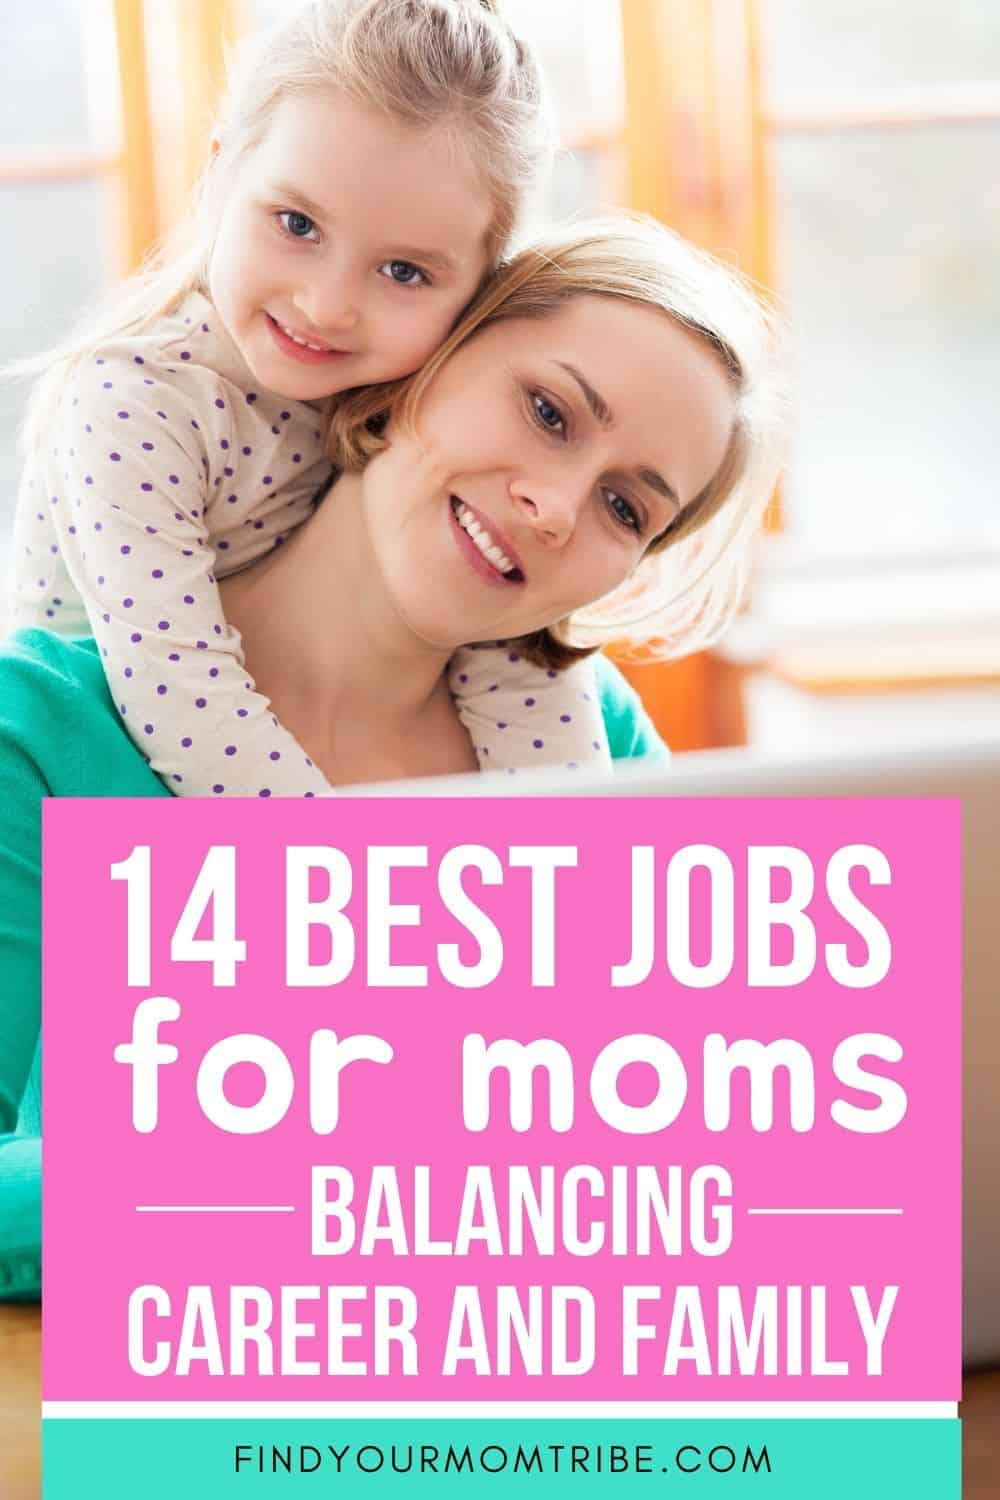 14 Best Jobs For Moms Of 2021: Balancing Career And Family